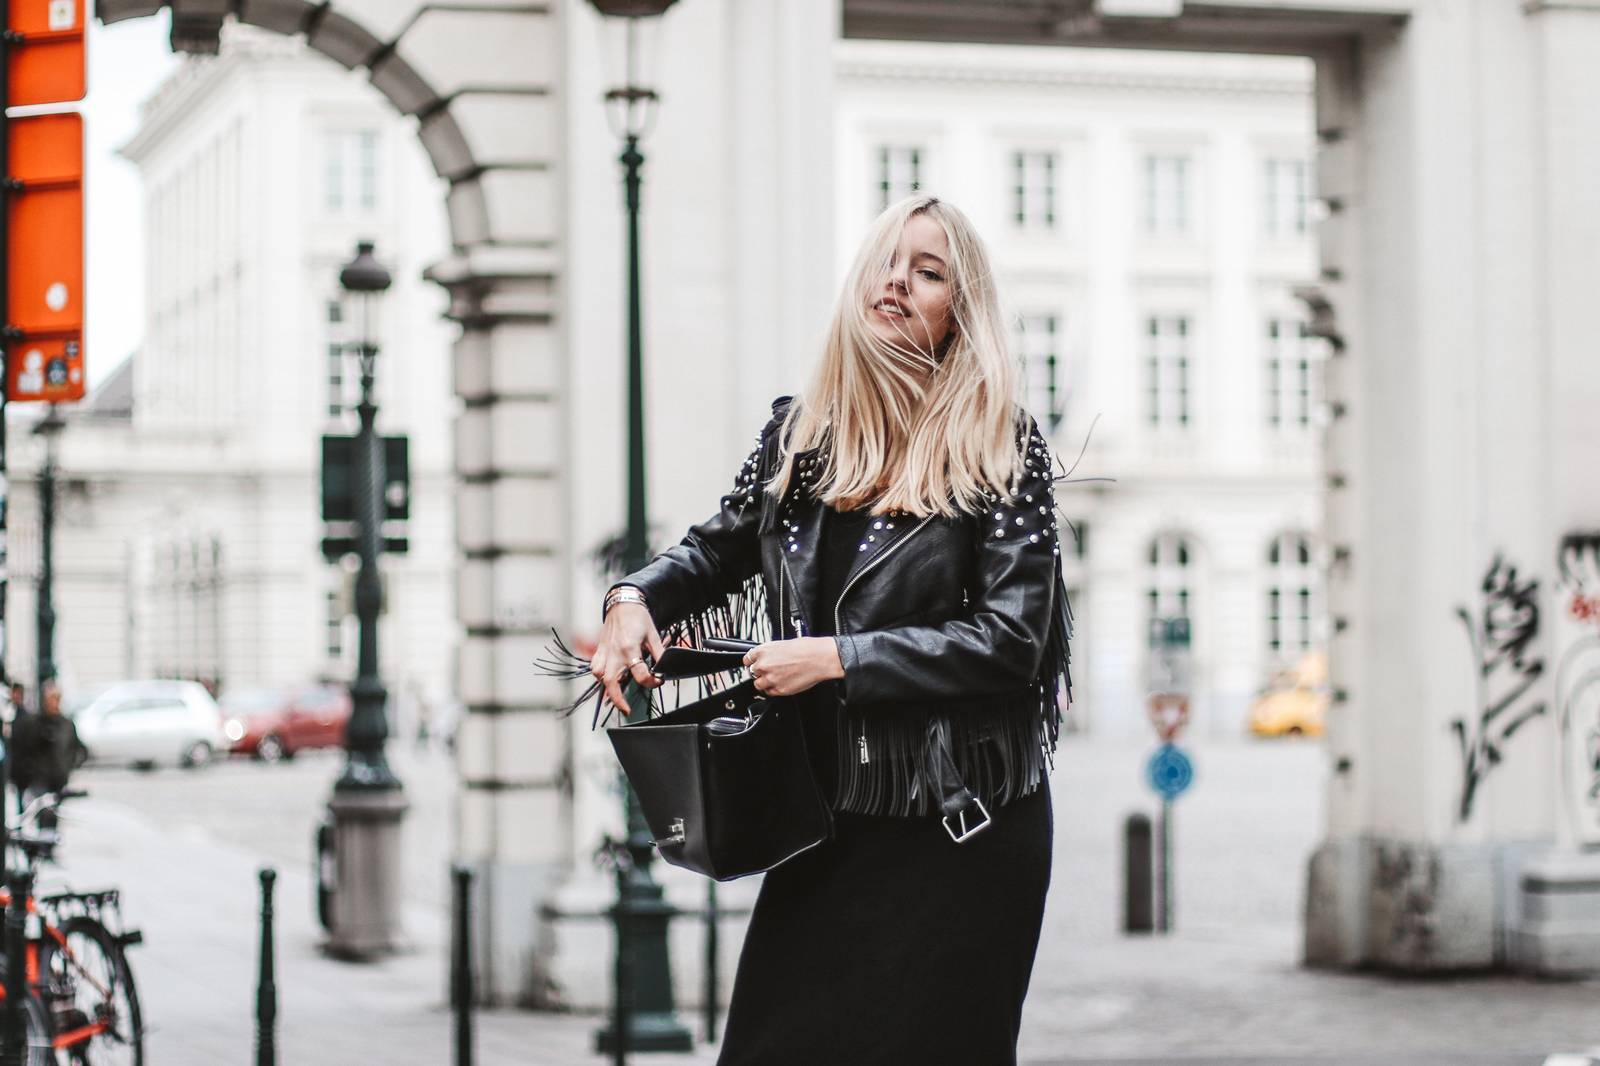 Fringed jacket, fishnet tights and Céline trapeze bag